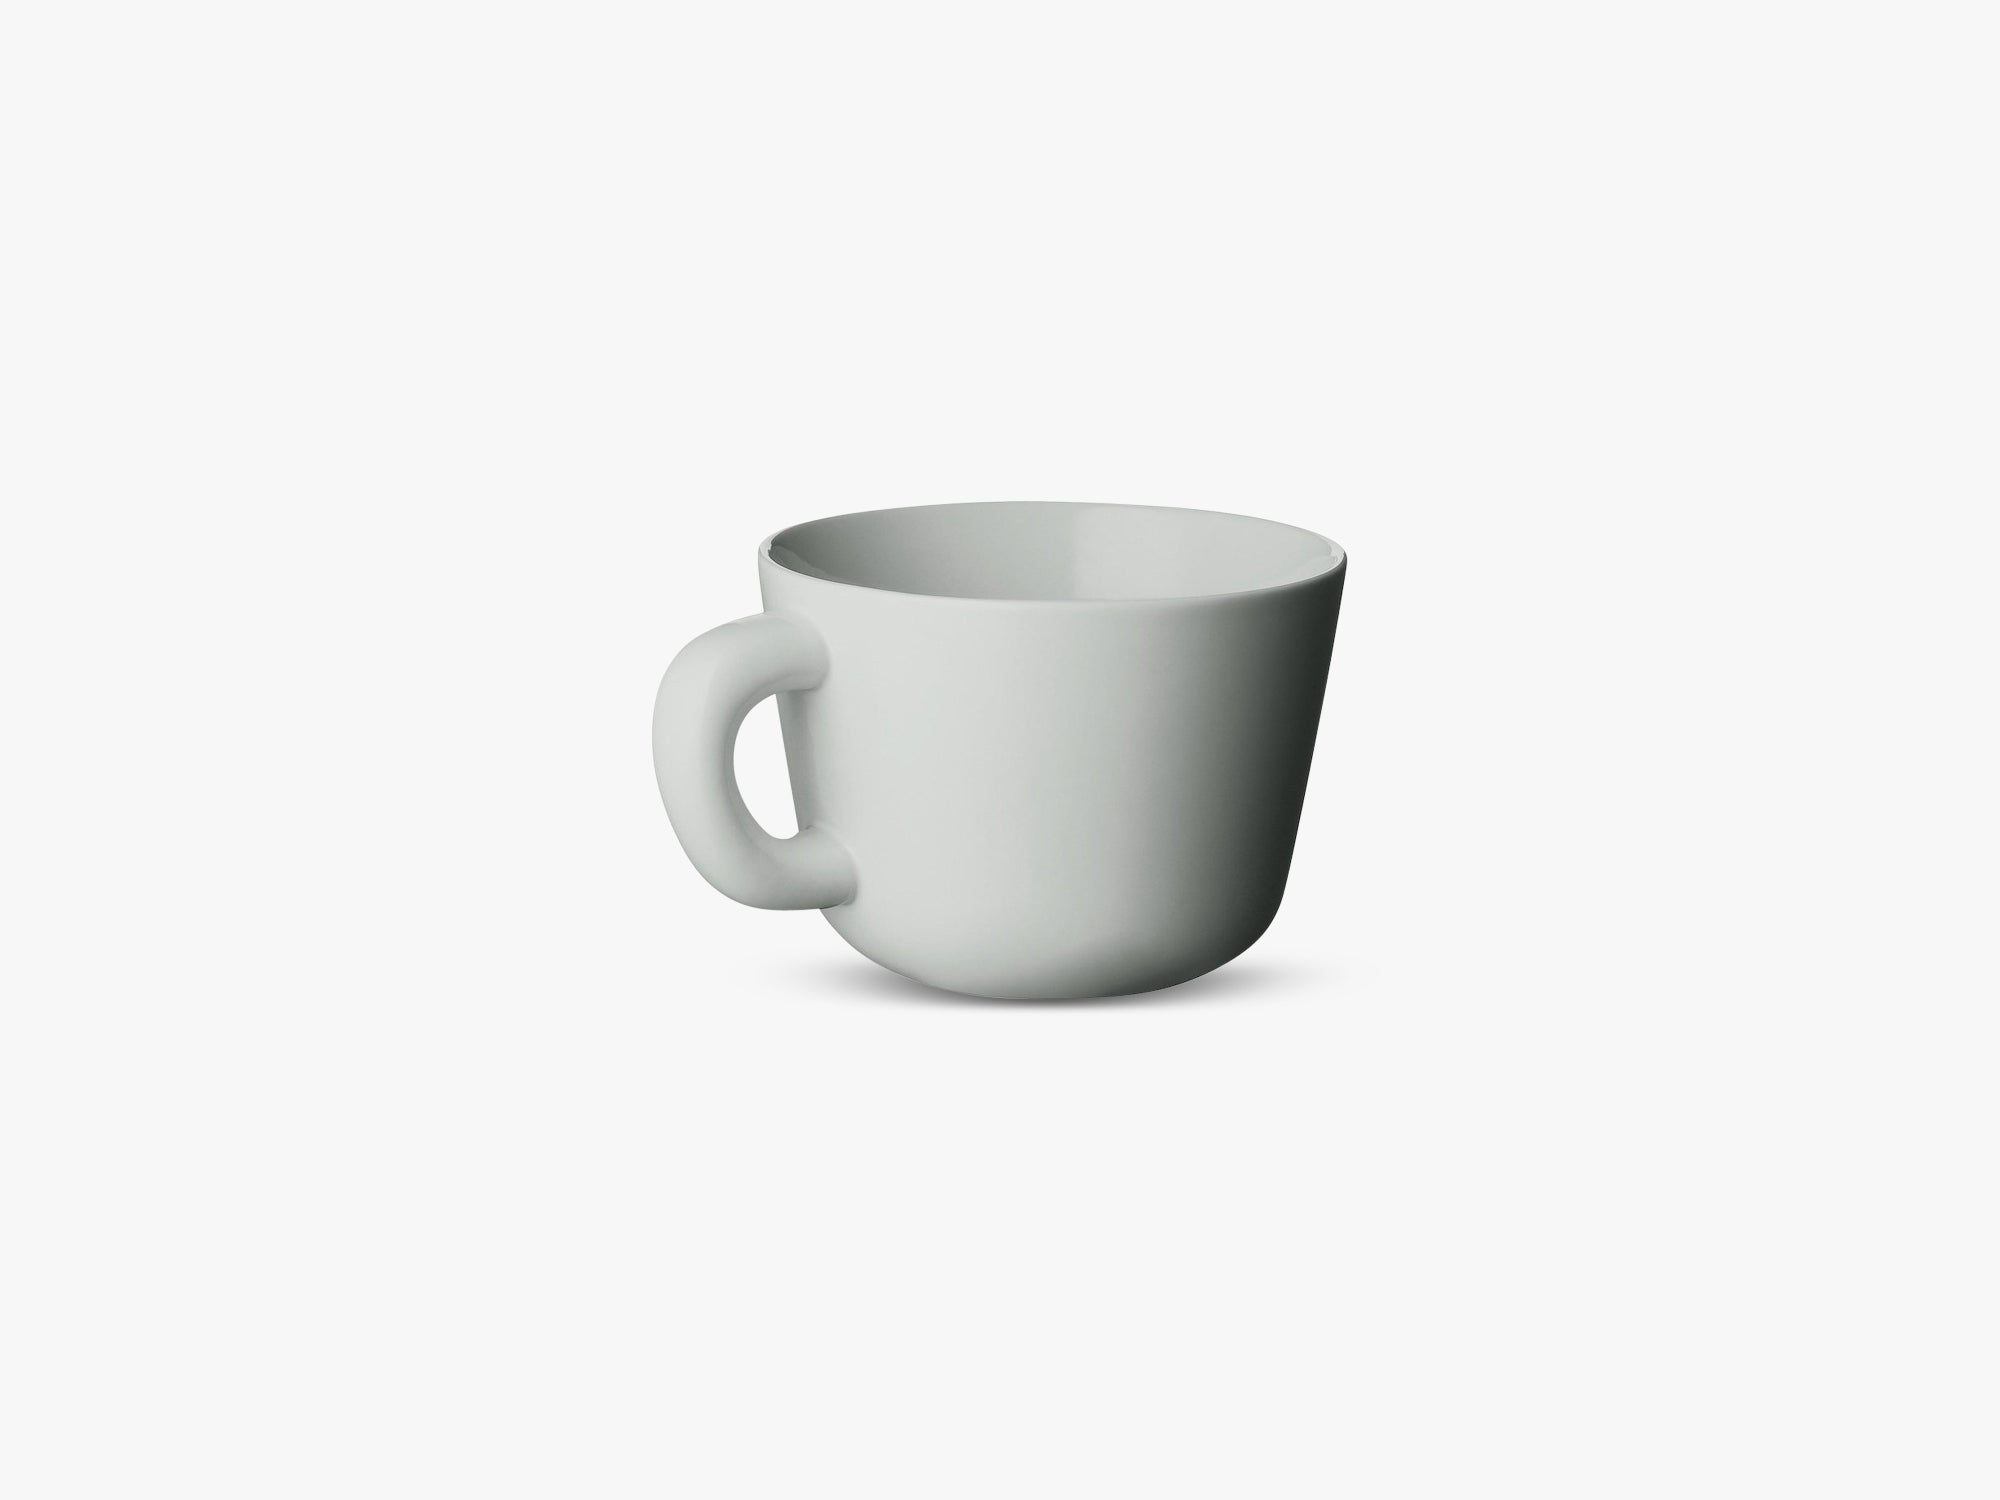 Bulky Ceramic Series, Cups - Grey (2 pcs) fra Muuto